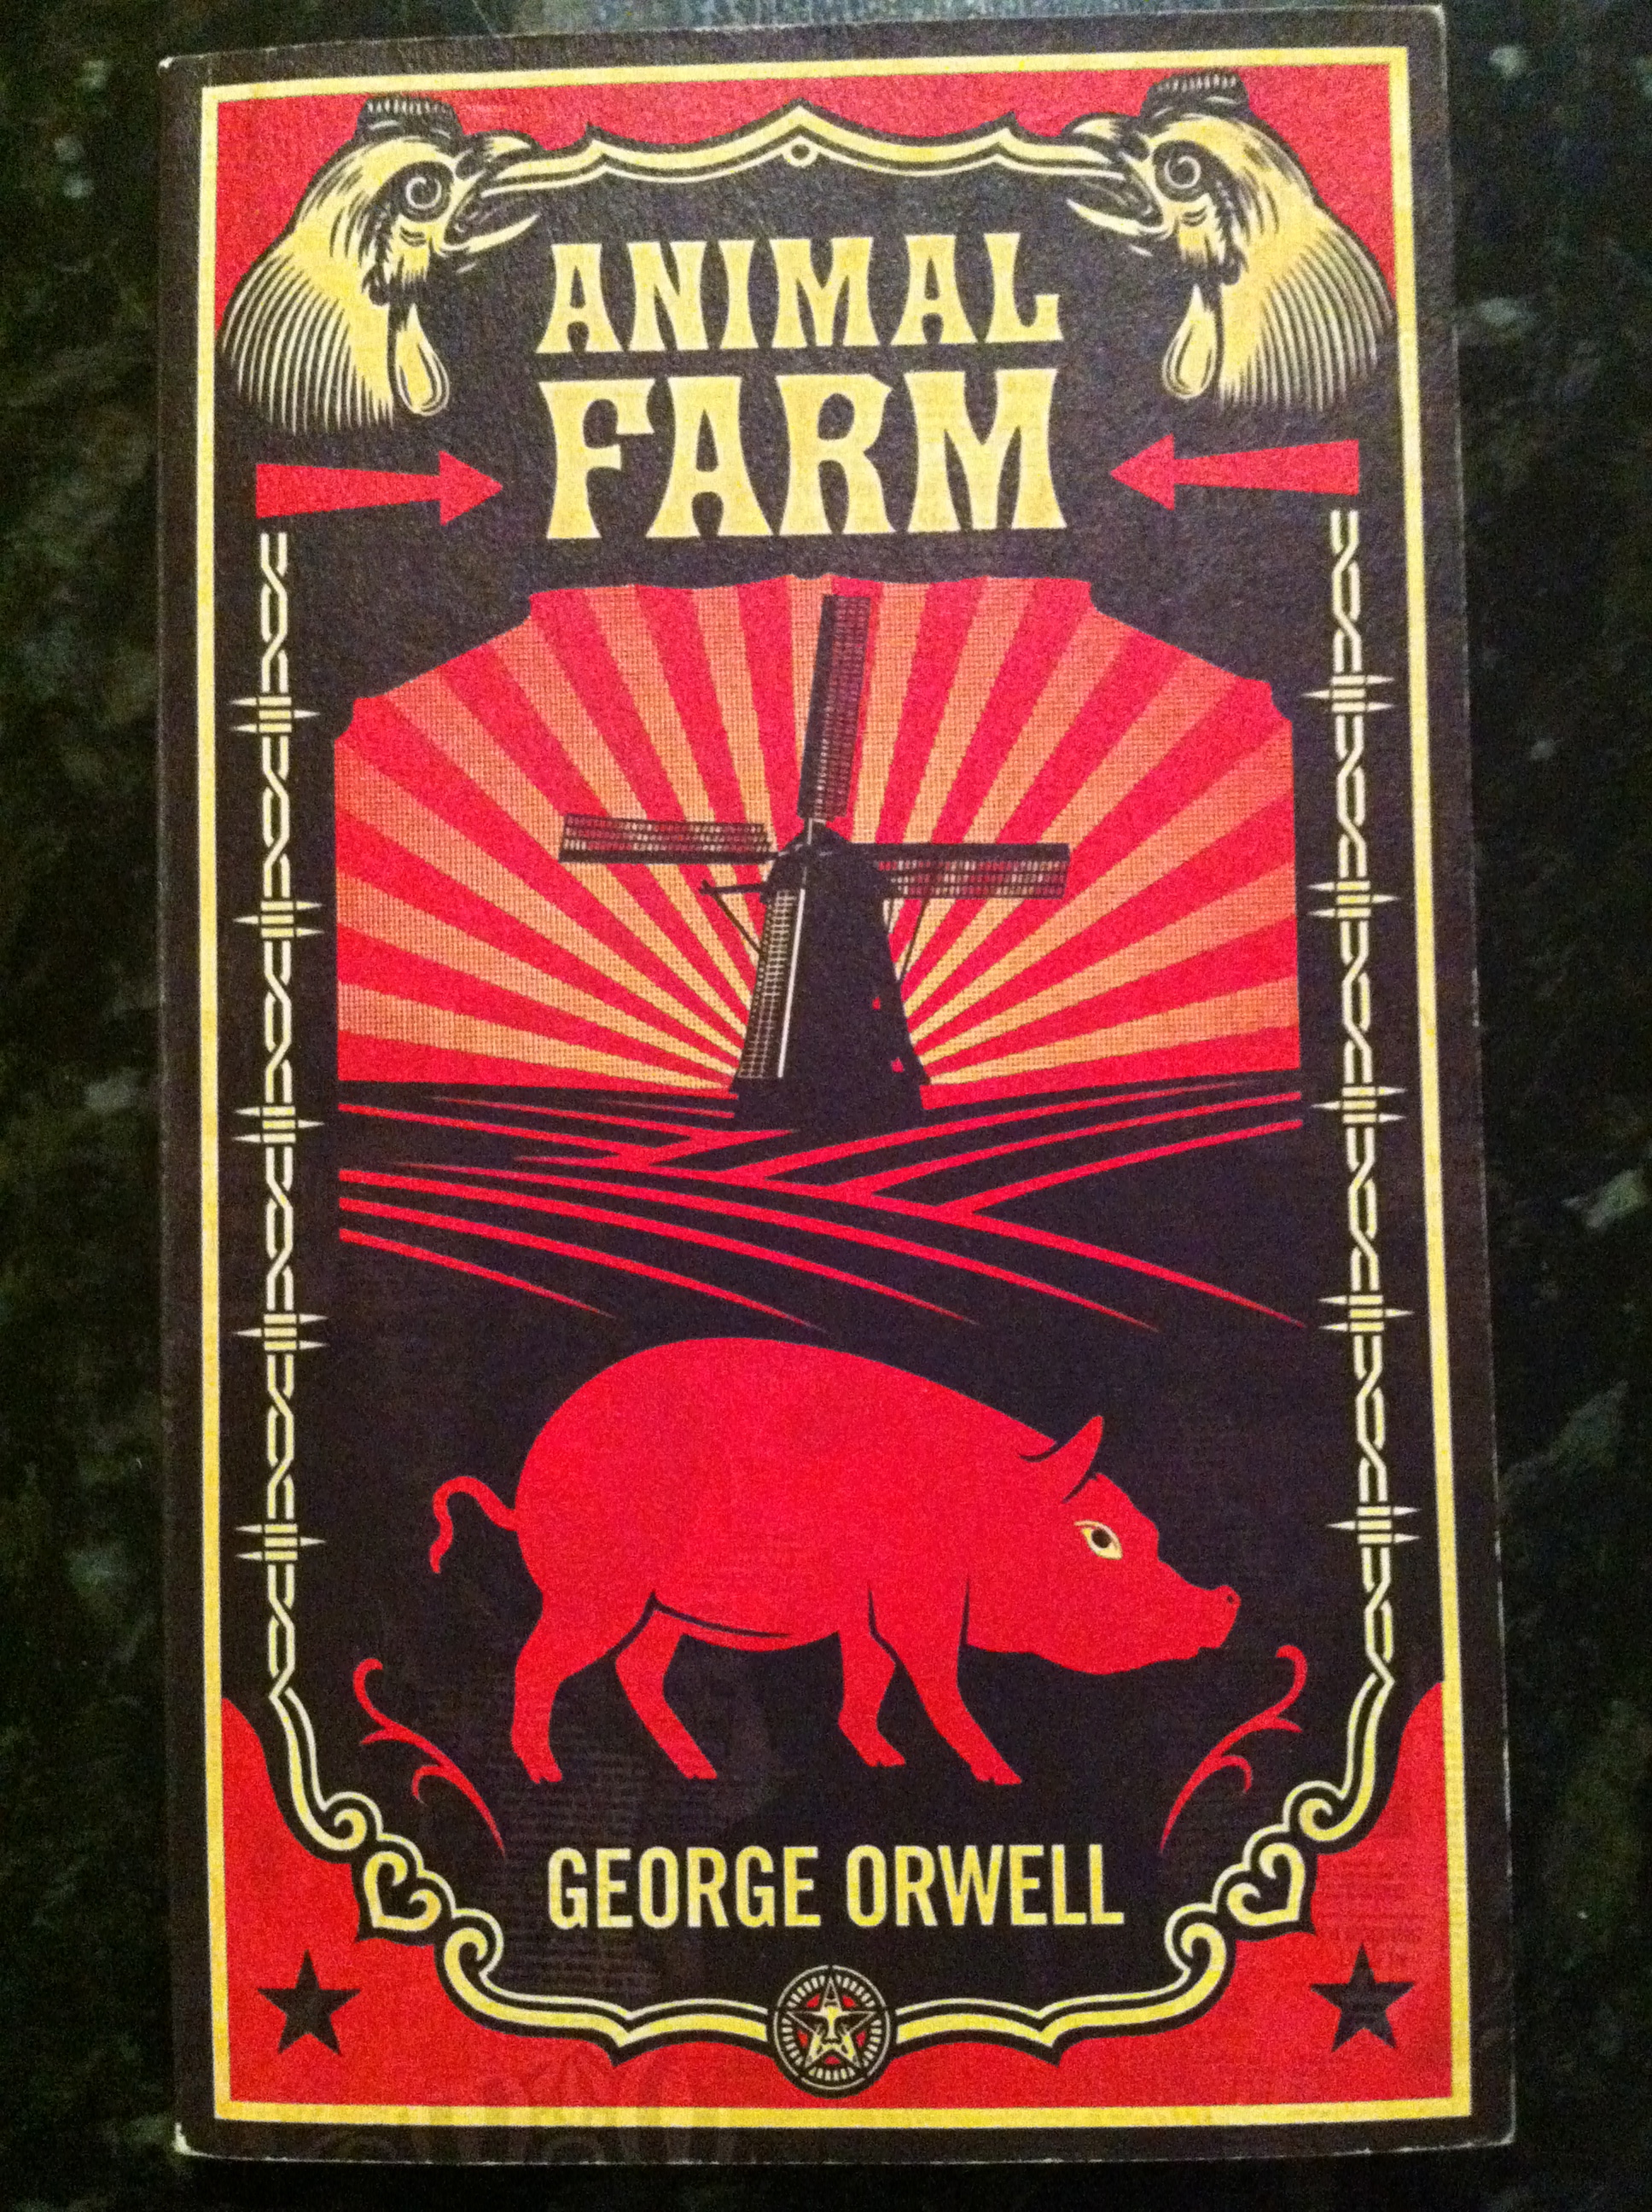 animal farm by george orwell portraying Download the free study guide and infographic for george orwell's novel animal farm here: learn about characters.